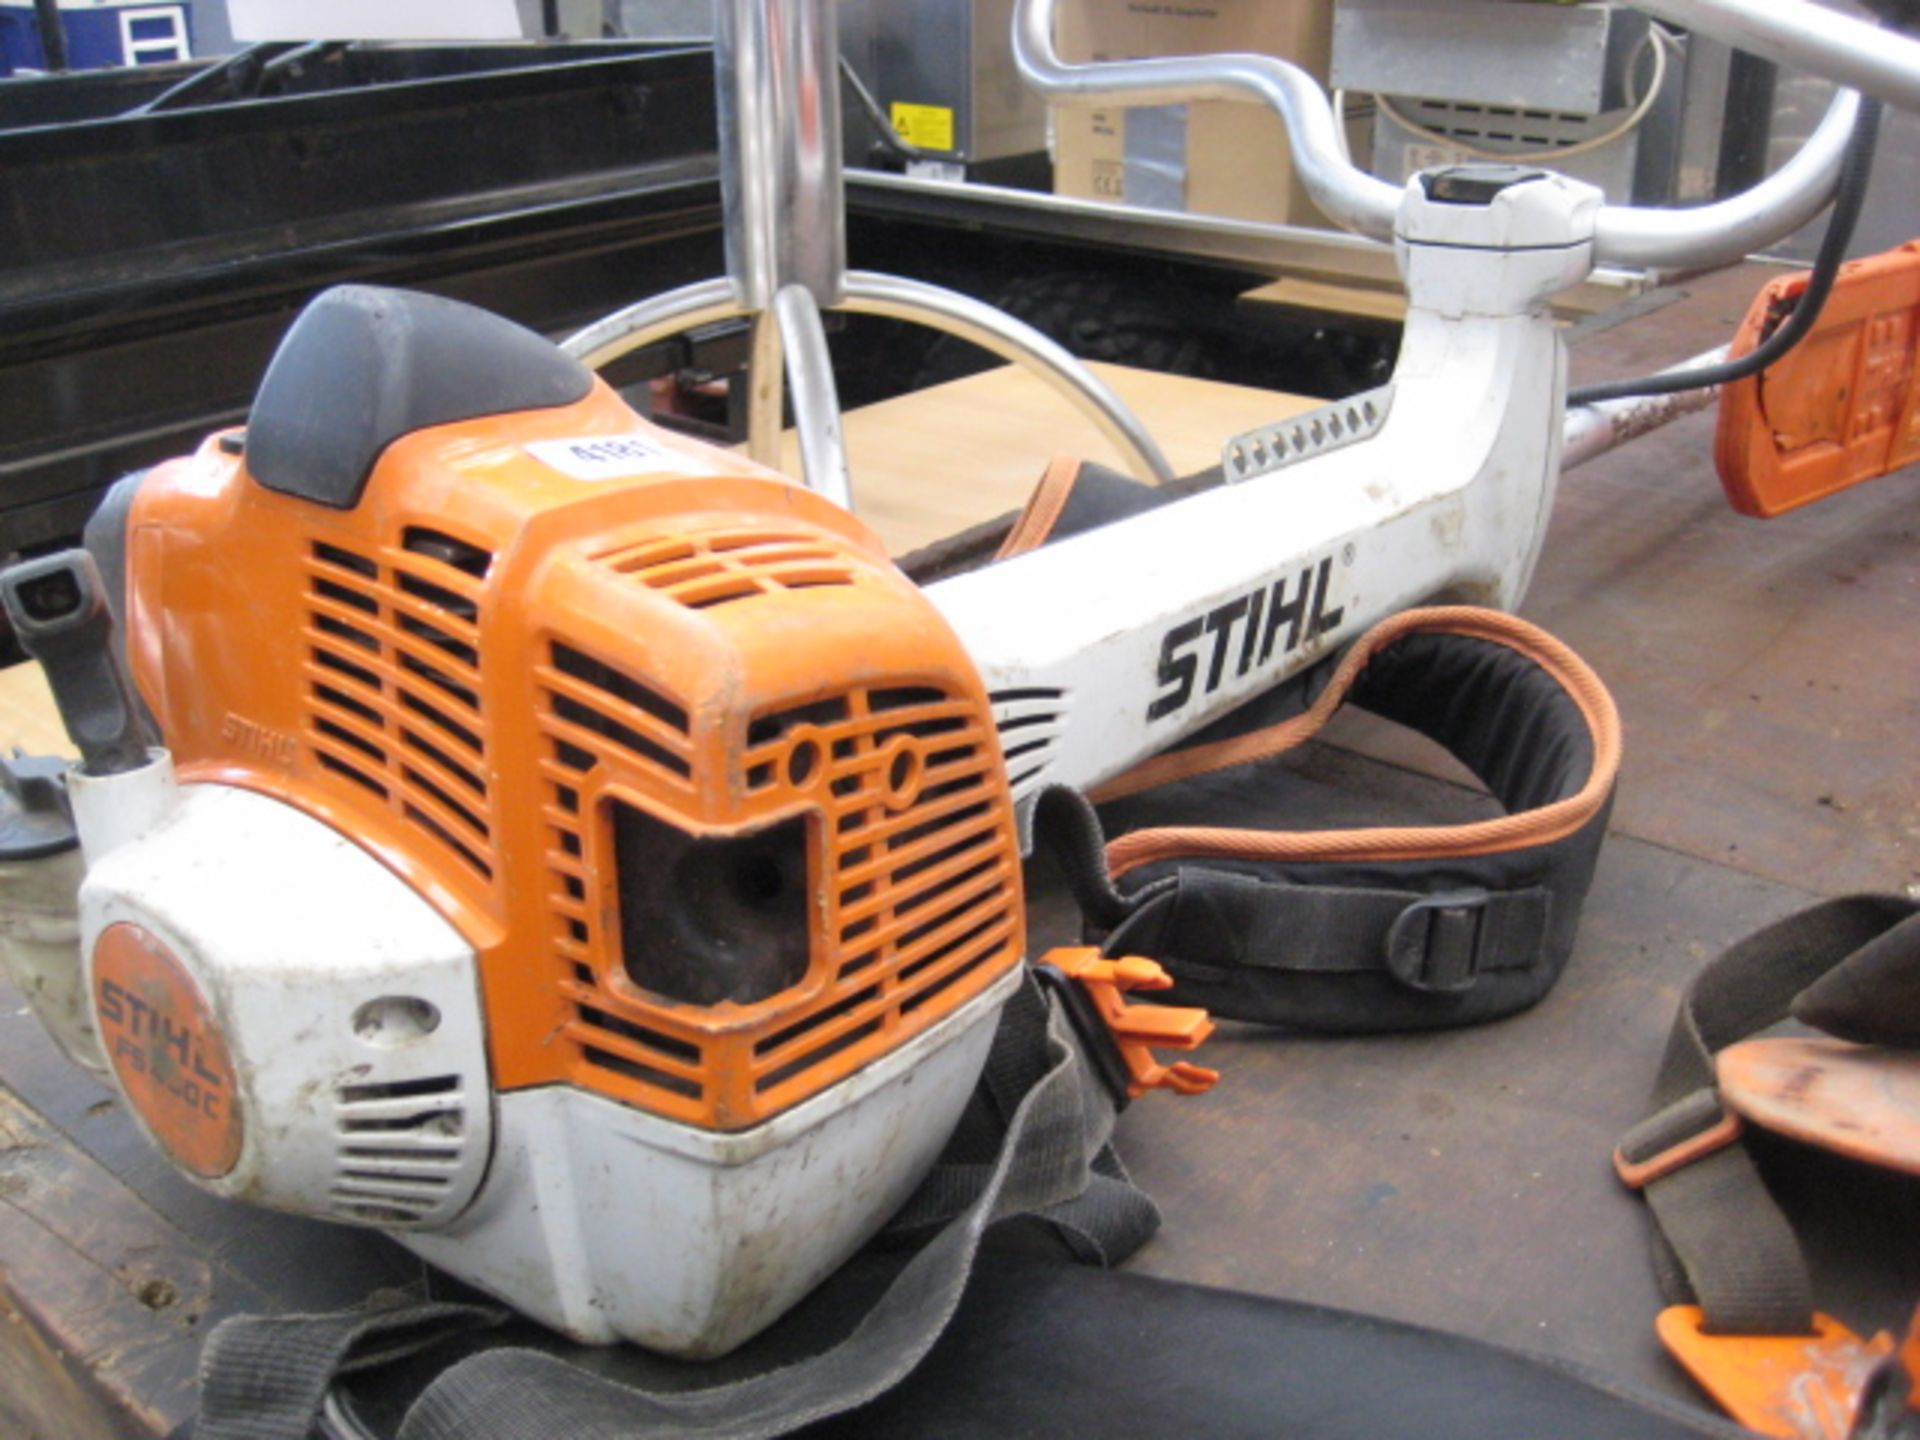 Stihl FS460C brush cutter